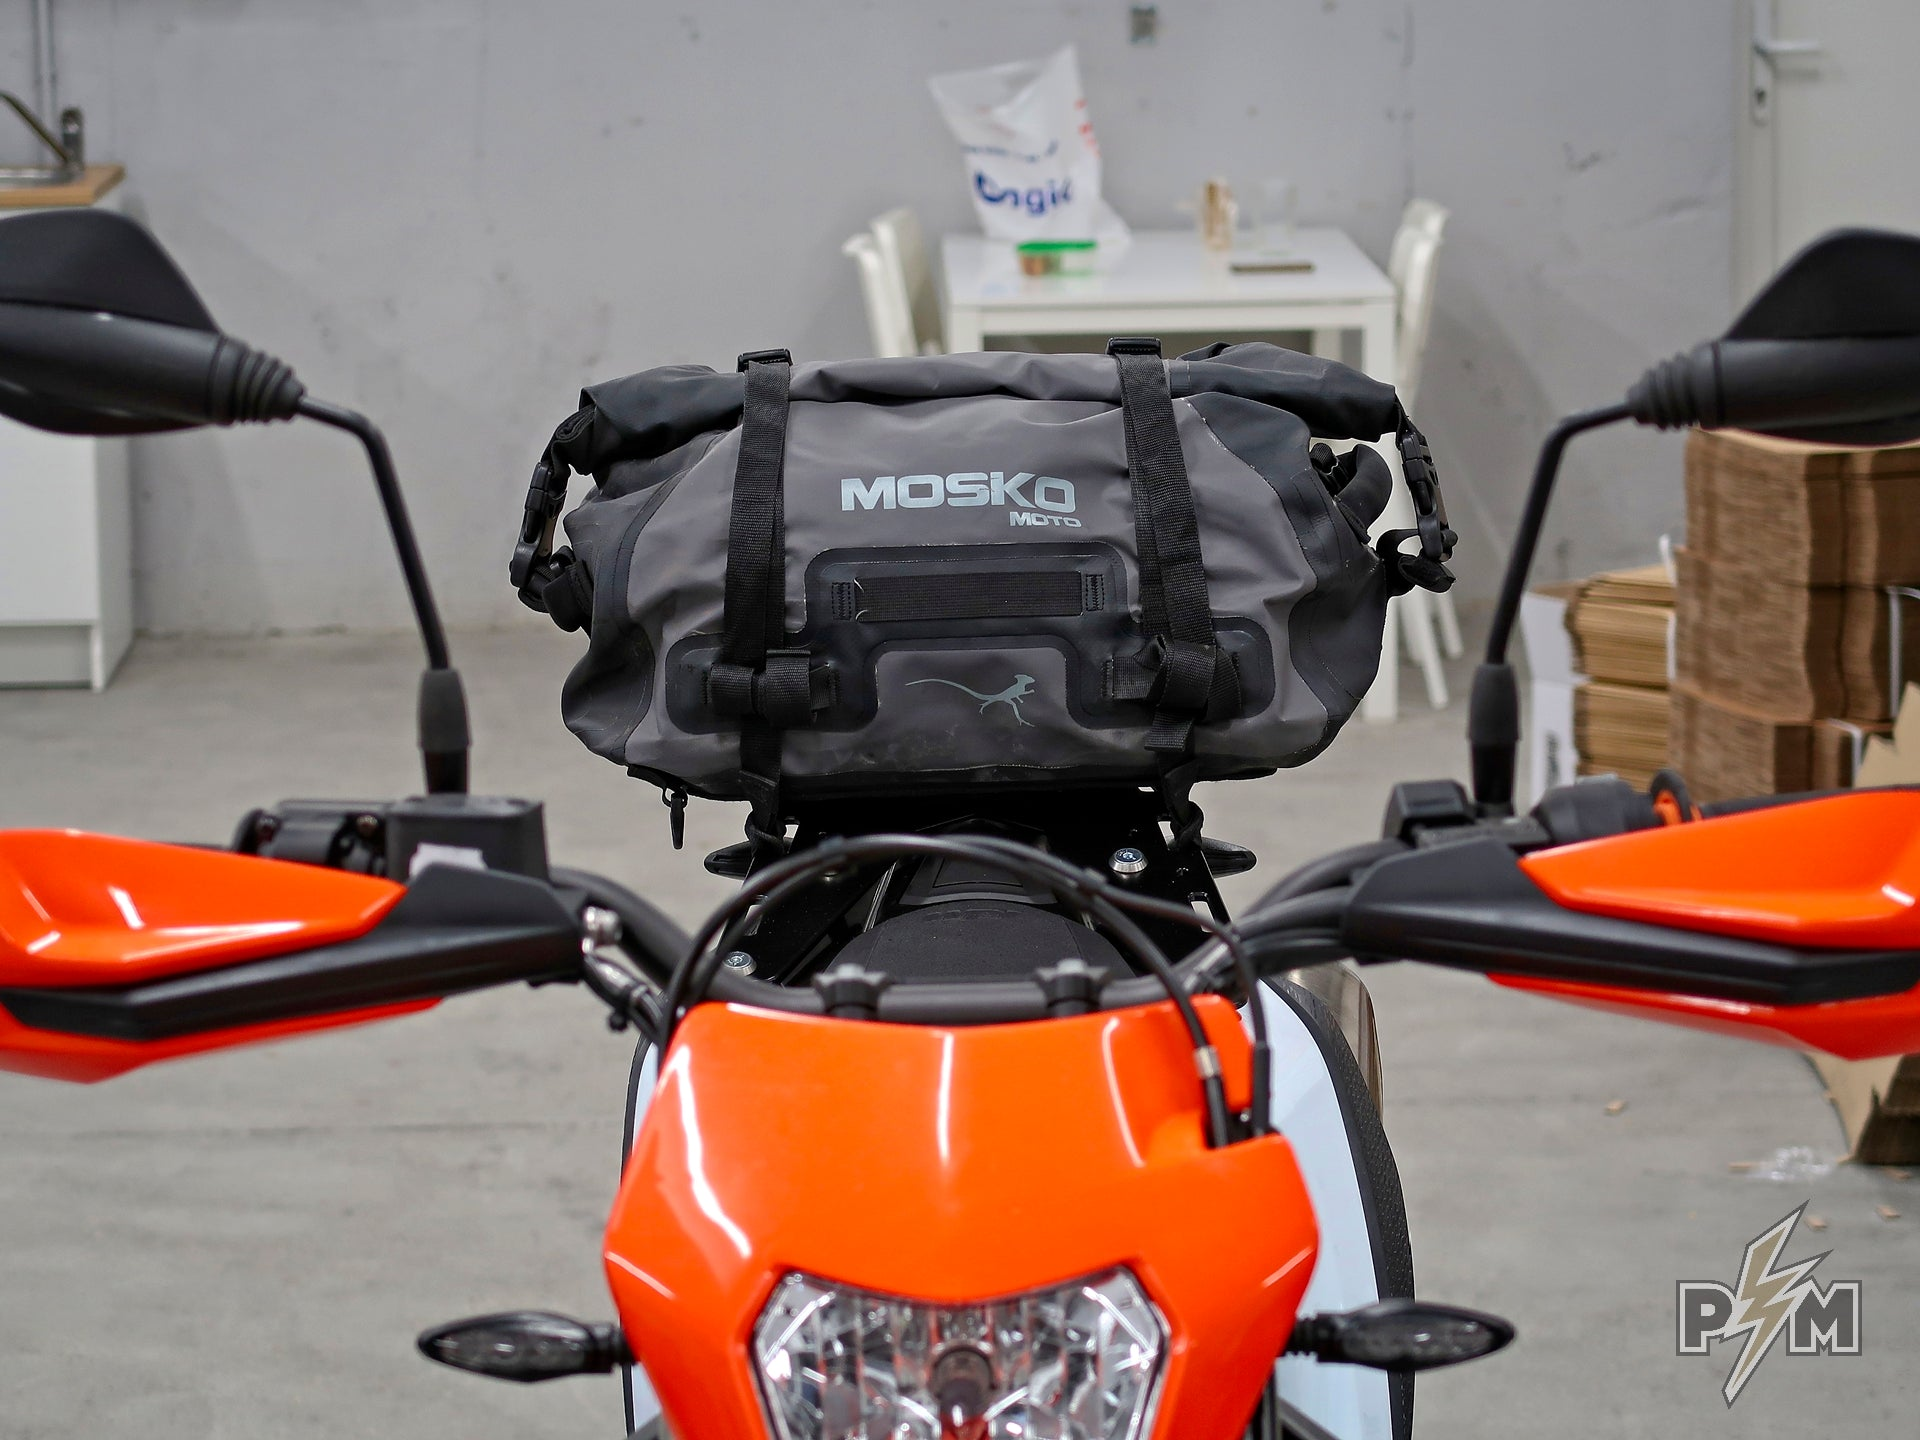 2019+ KTM 690 Enduro  Luggage rack and Mosko moto Scout 25 Duffle